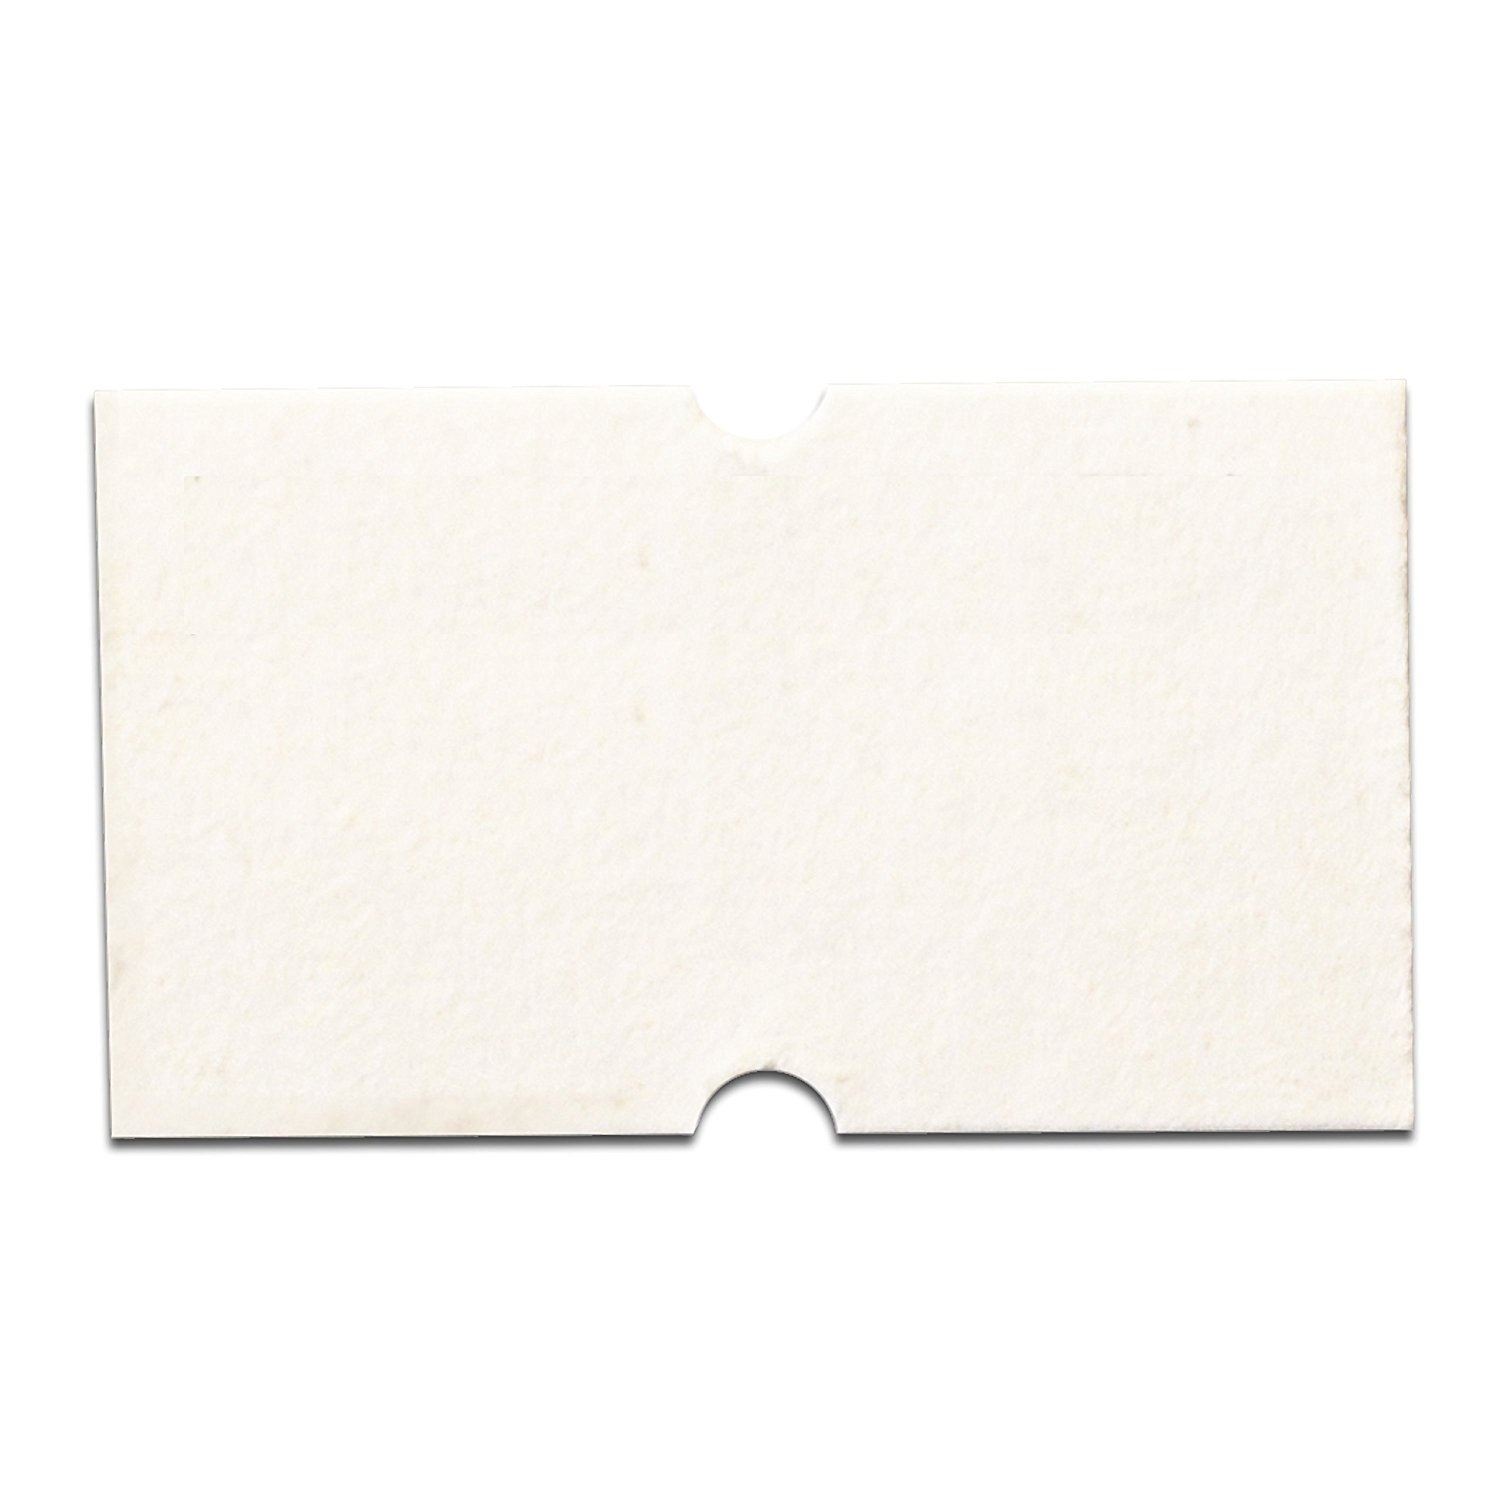 Price Gun Labels (CT1 Punch Hole) White 22 x 12mm